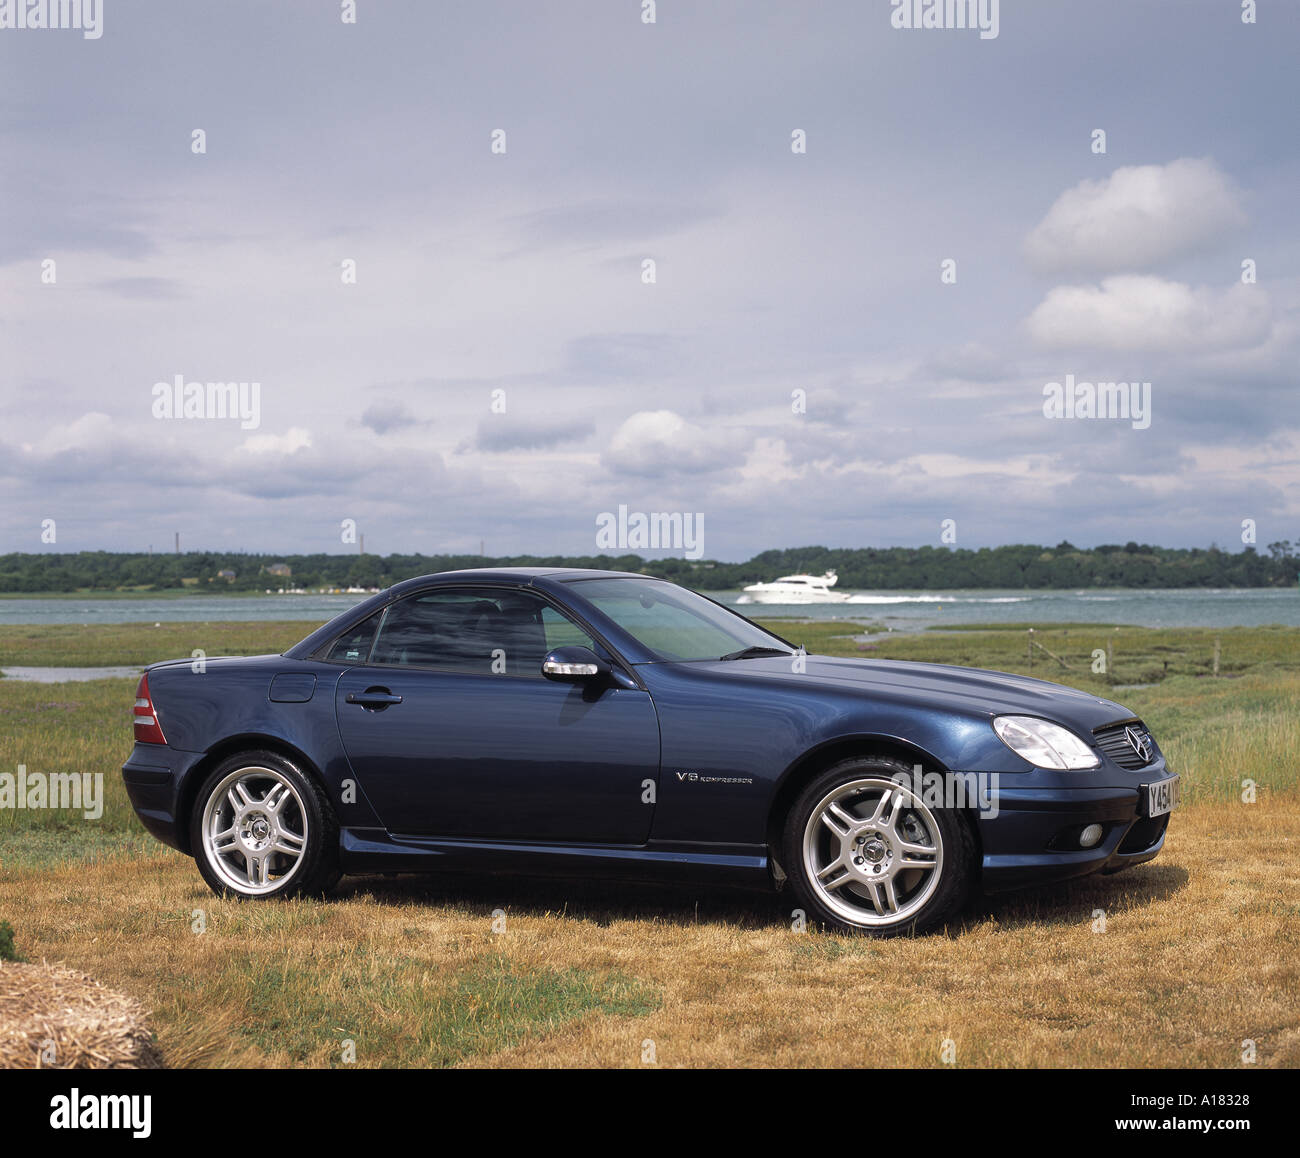 2001 mercedes benz slk 320 amg stock photo royalty free for 2001 mercedes benz slk320